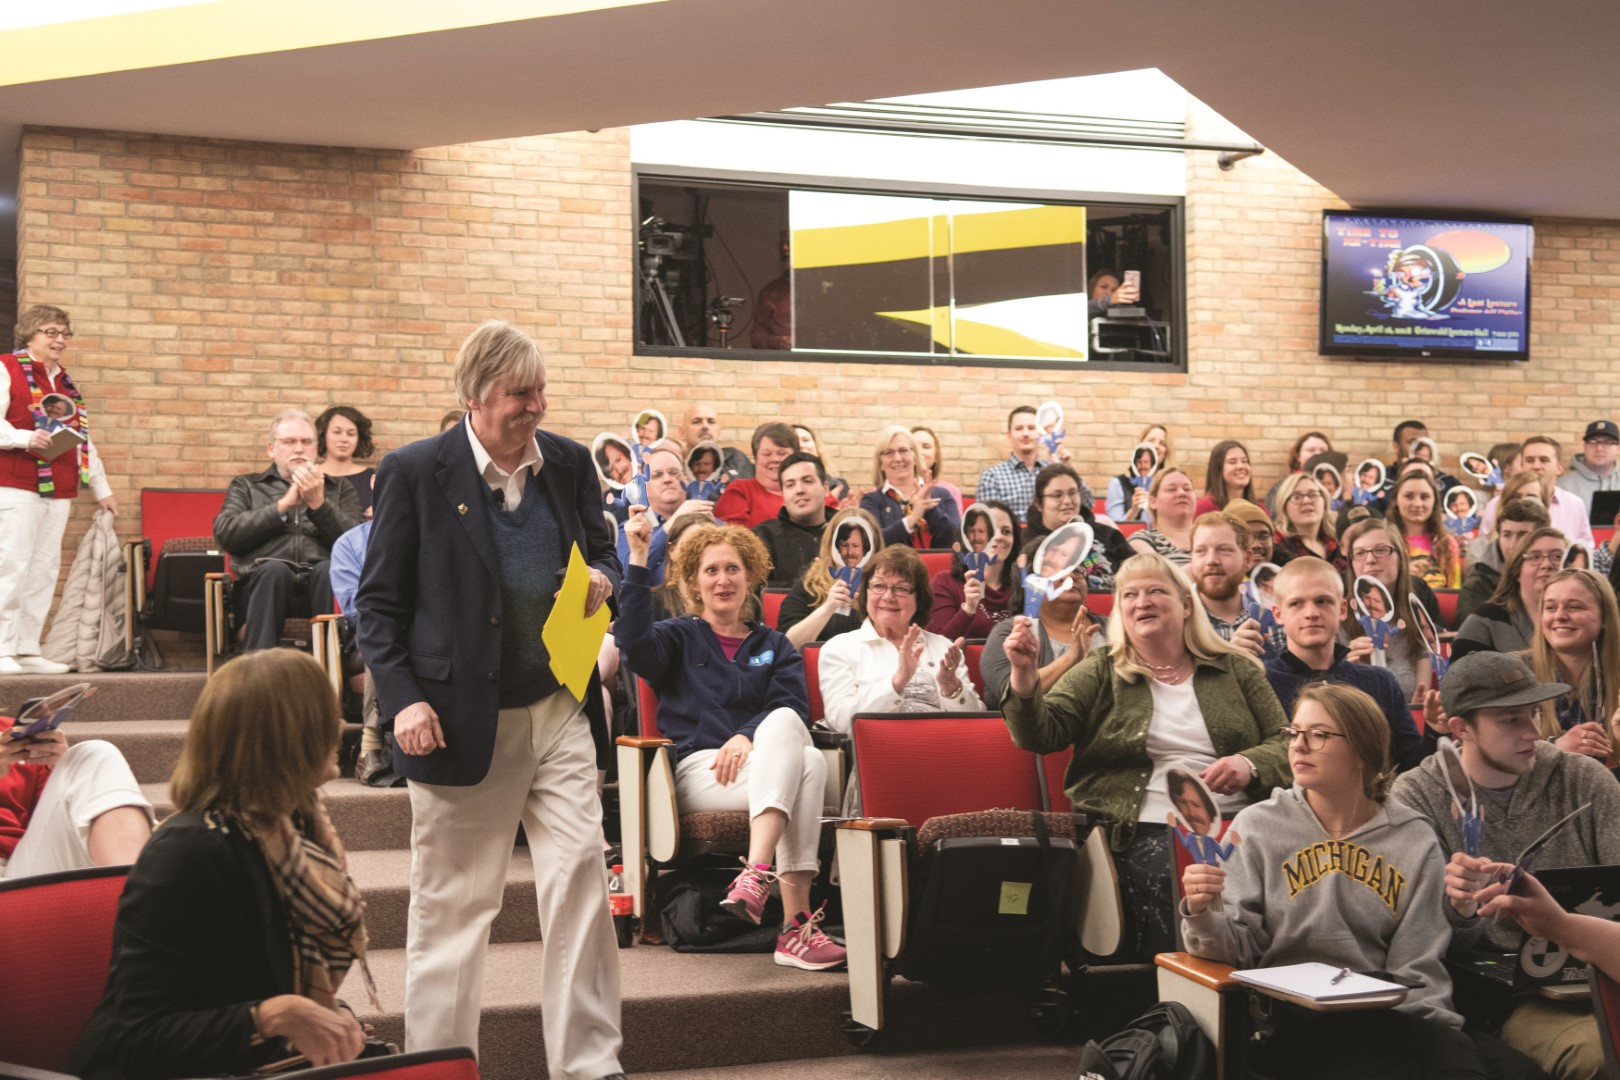 In his 42nd year at Northwood, Jeff Phillips gave a last lecture to an overflowing auditorium of students, faculty, staff, and friends wearing white pants and waving Jeff Phillips bobble heads. His last lecture was just what you'd expect – one filled with jokes, laughter, and the reminder that life is a wild, colorful thing that exists because of our relationships with others.